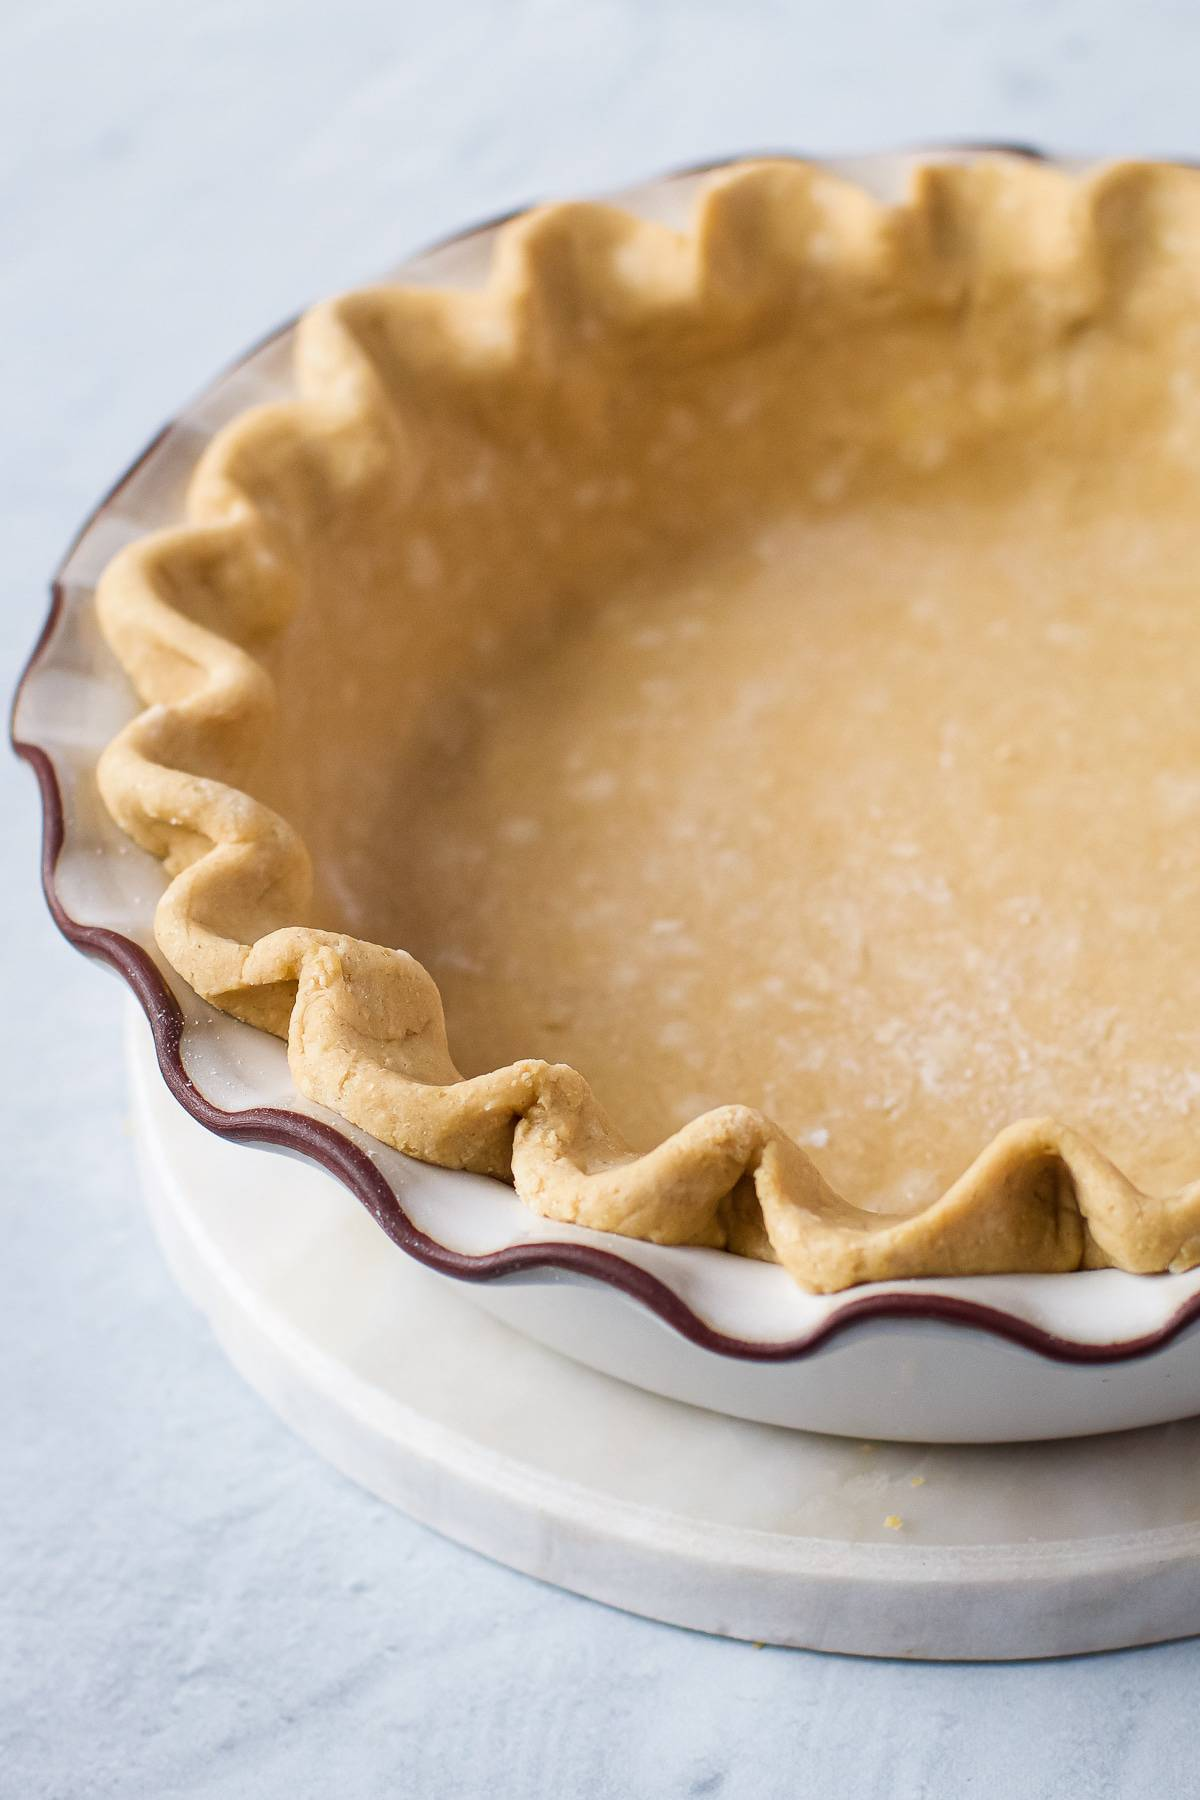 Homemade pie crust in a pretty pie plate.